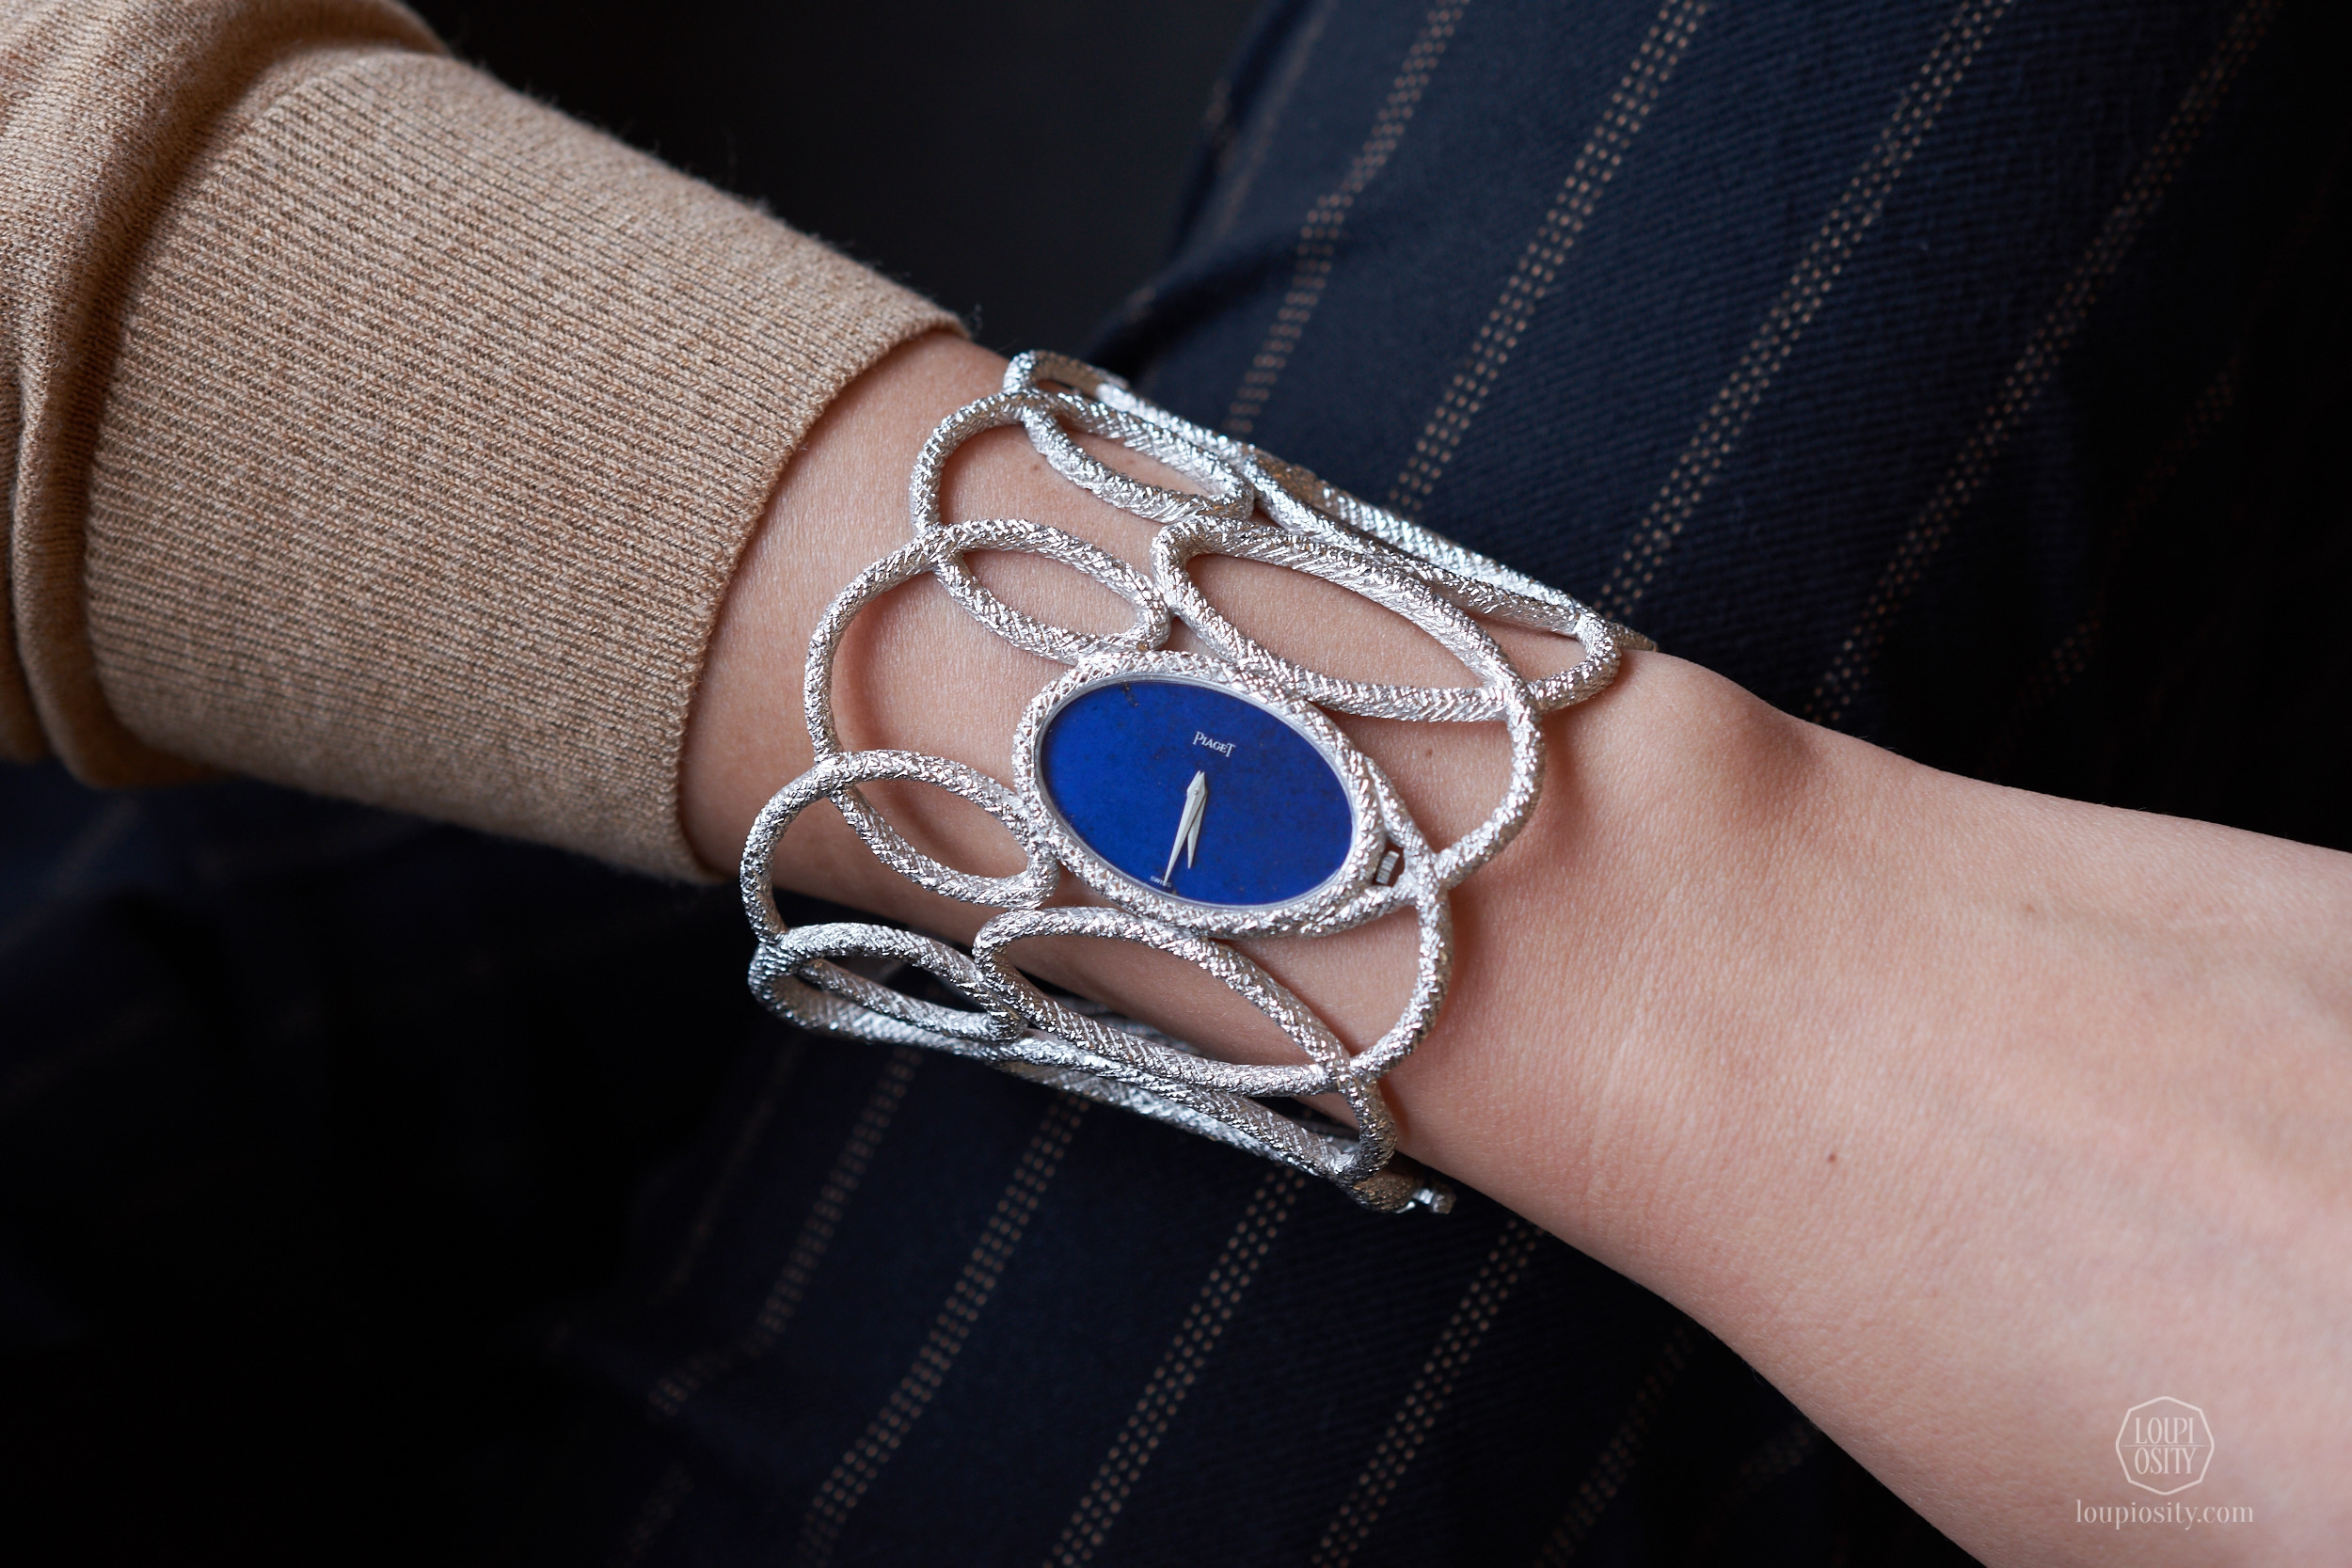 Lots 237 Piaget Manchette white gold openwork textured bangle watch with lapis lazuli dial